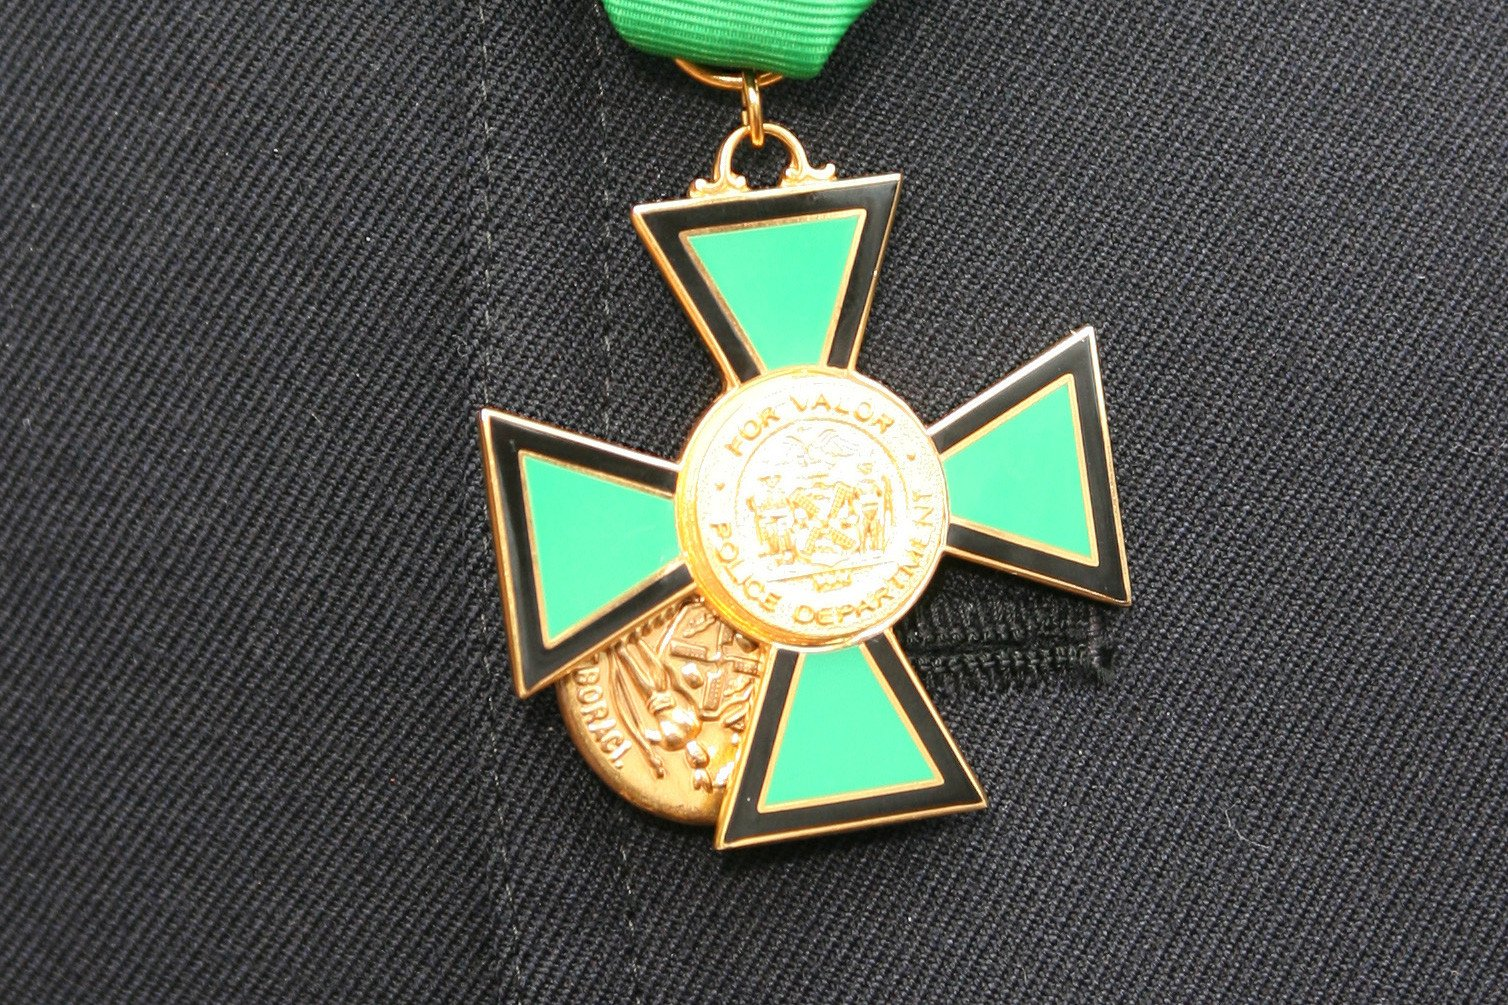 NYPD Medal of Valor found in thrift store jewelry purchase